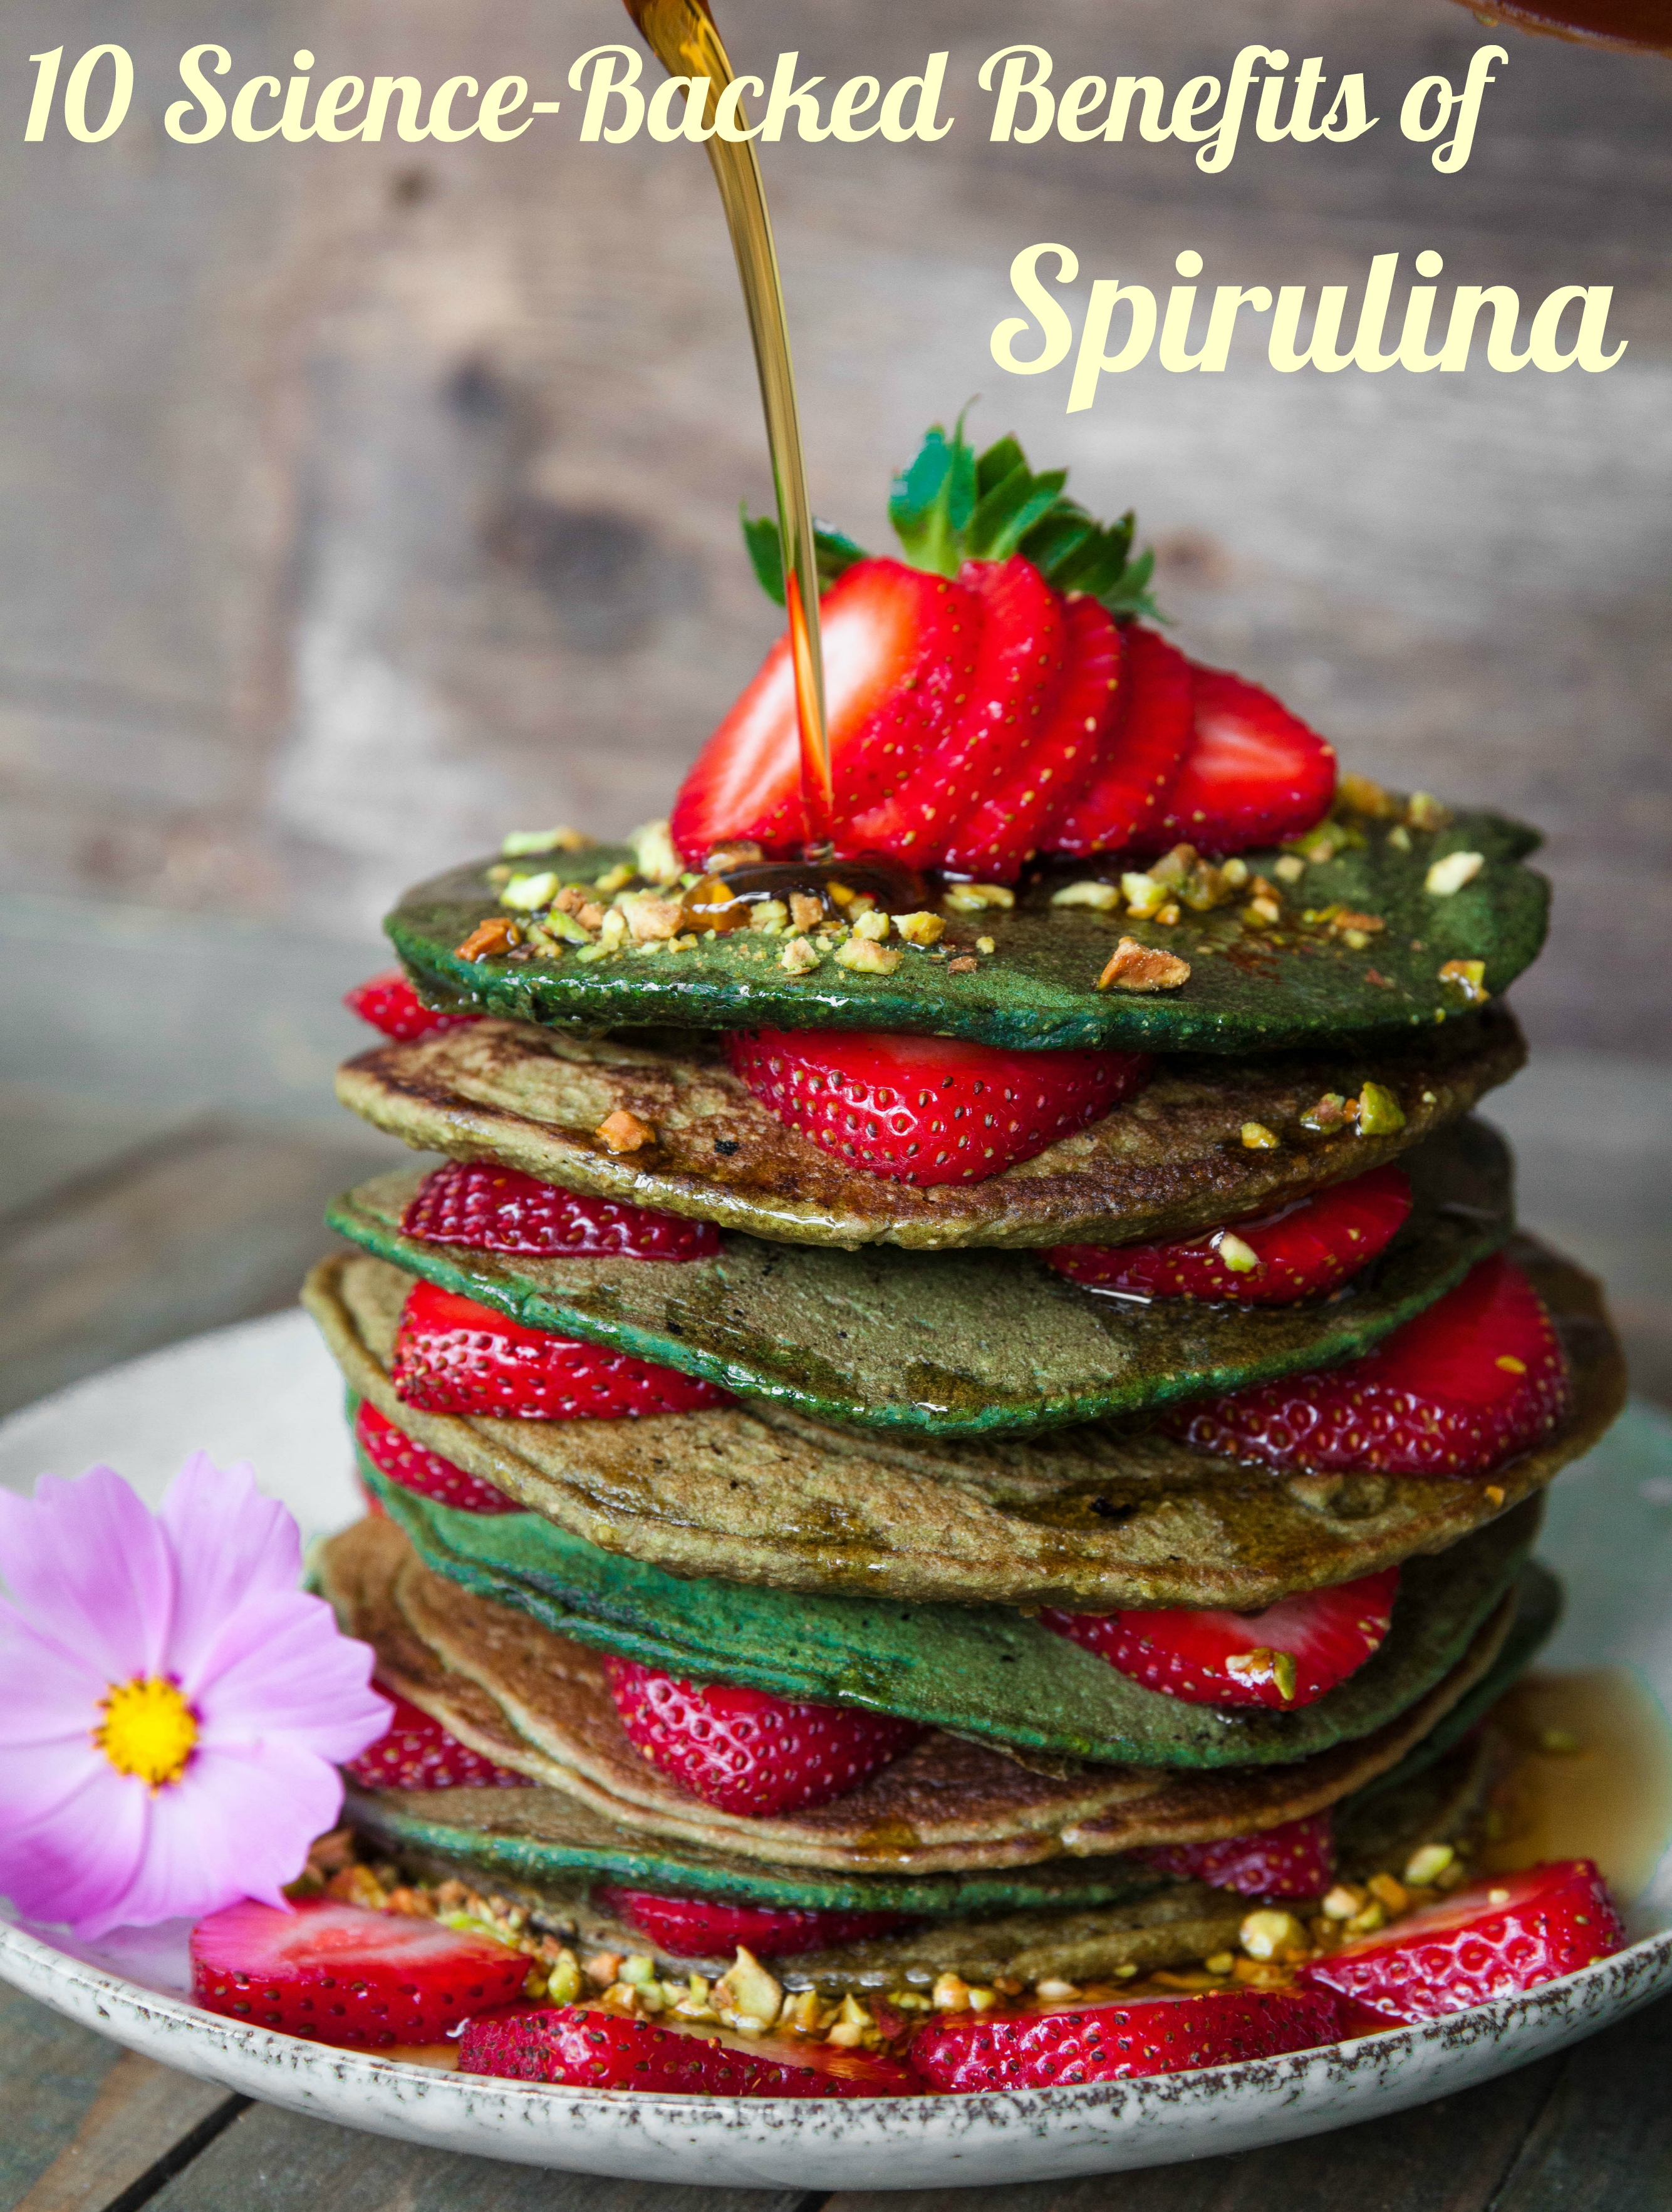 benefits of spirulina, superfood spirulina, best superfoods, complete protein foods, best foods in the world, healthiest supplements, healthiest foods, algae for health